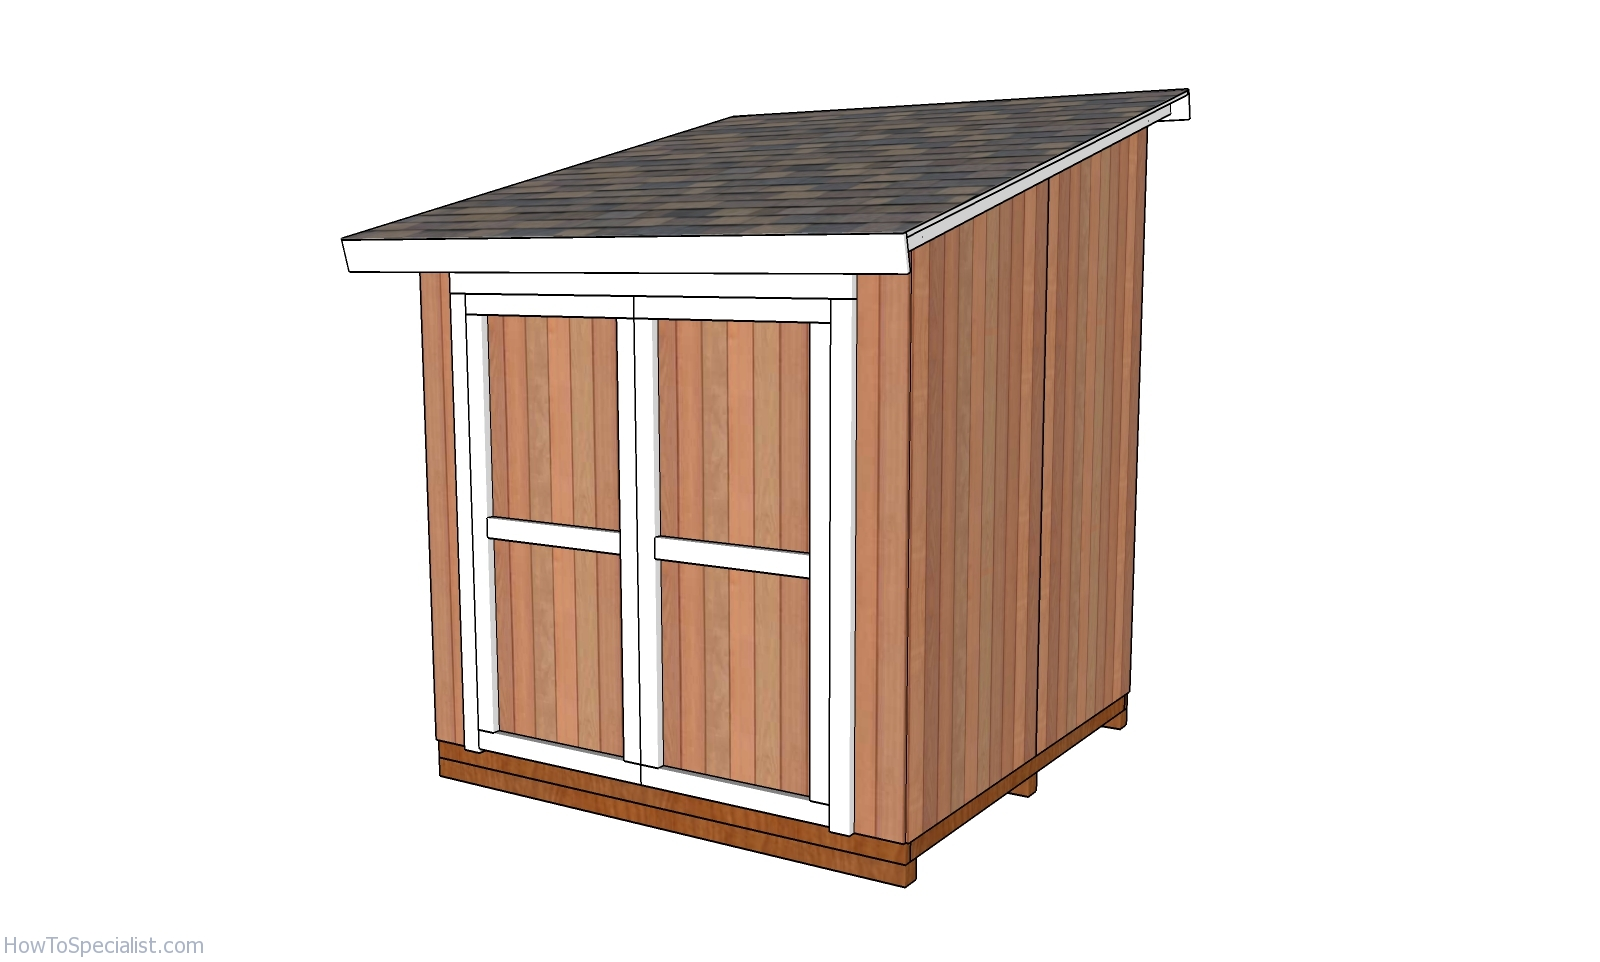 32x32 Lean to Shed - Free DIY Plans  HowToSpecialist - How to Build